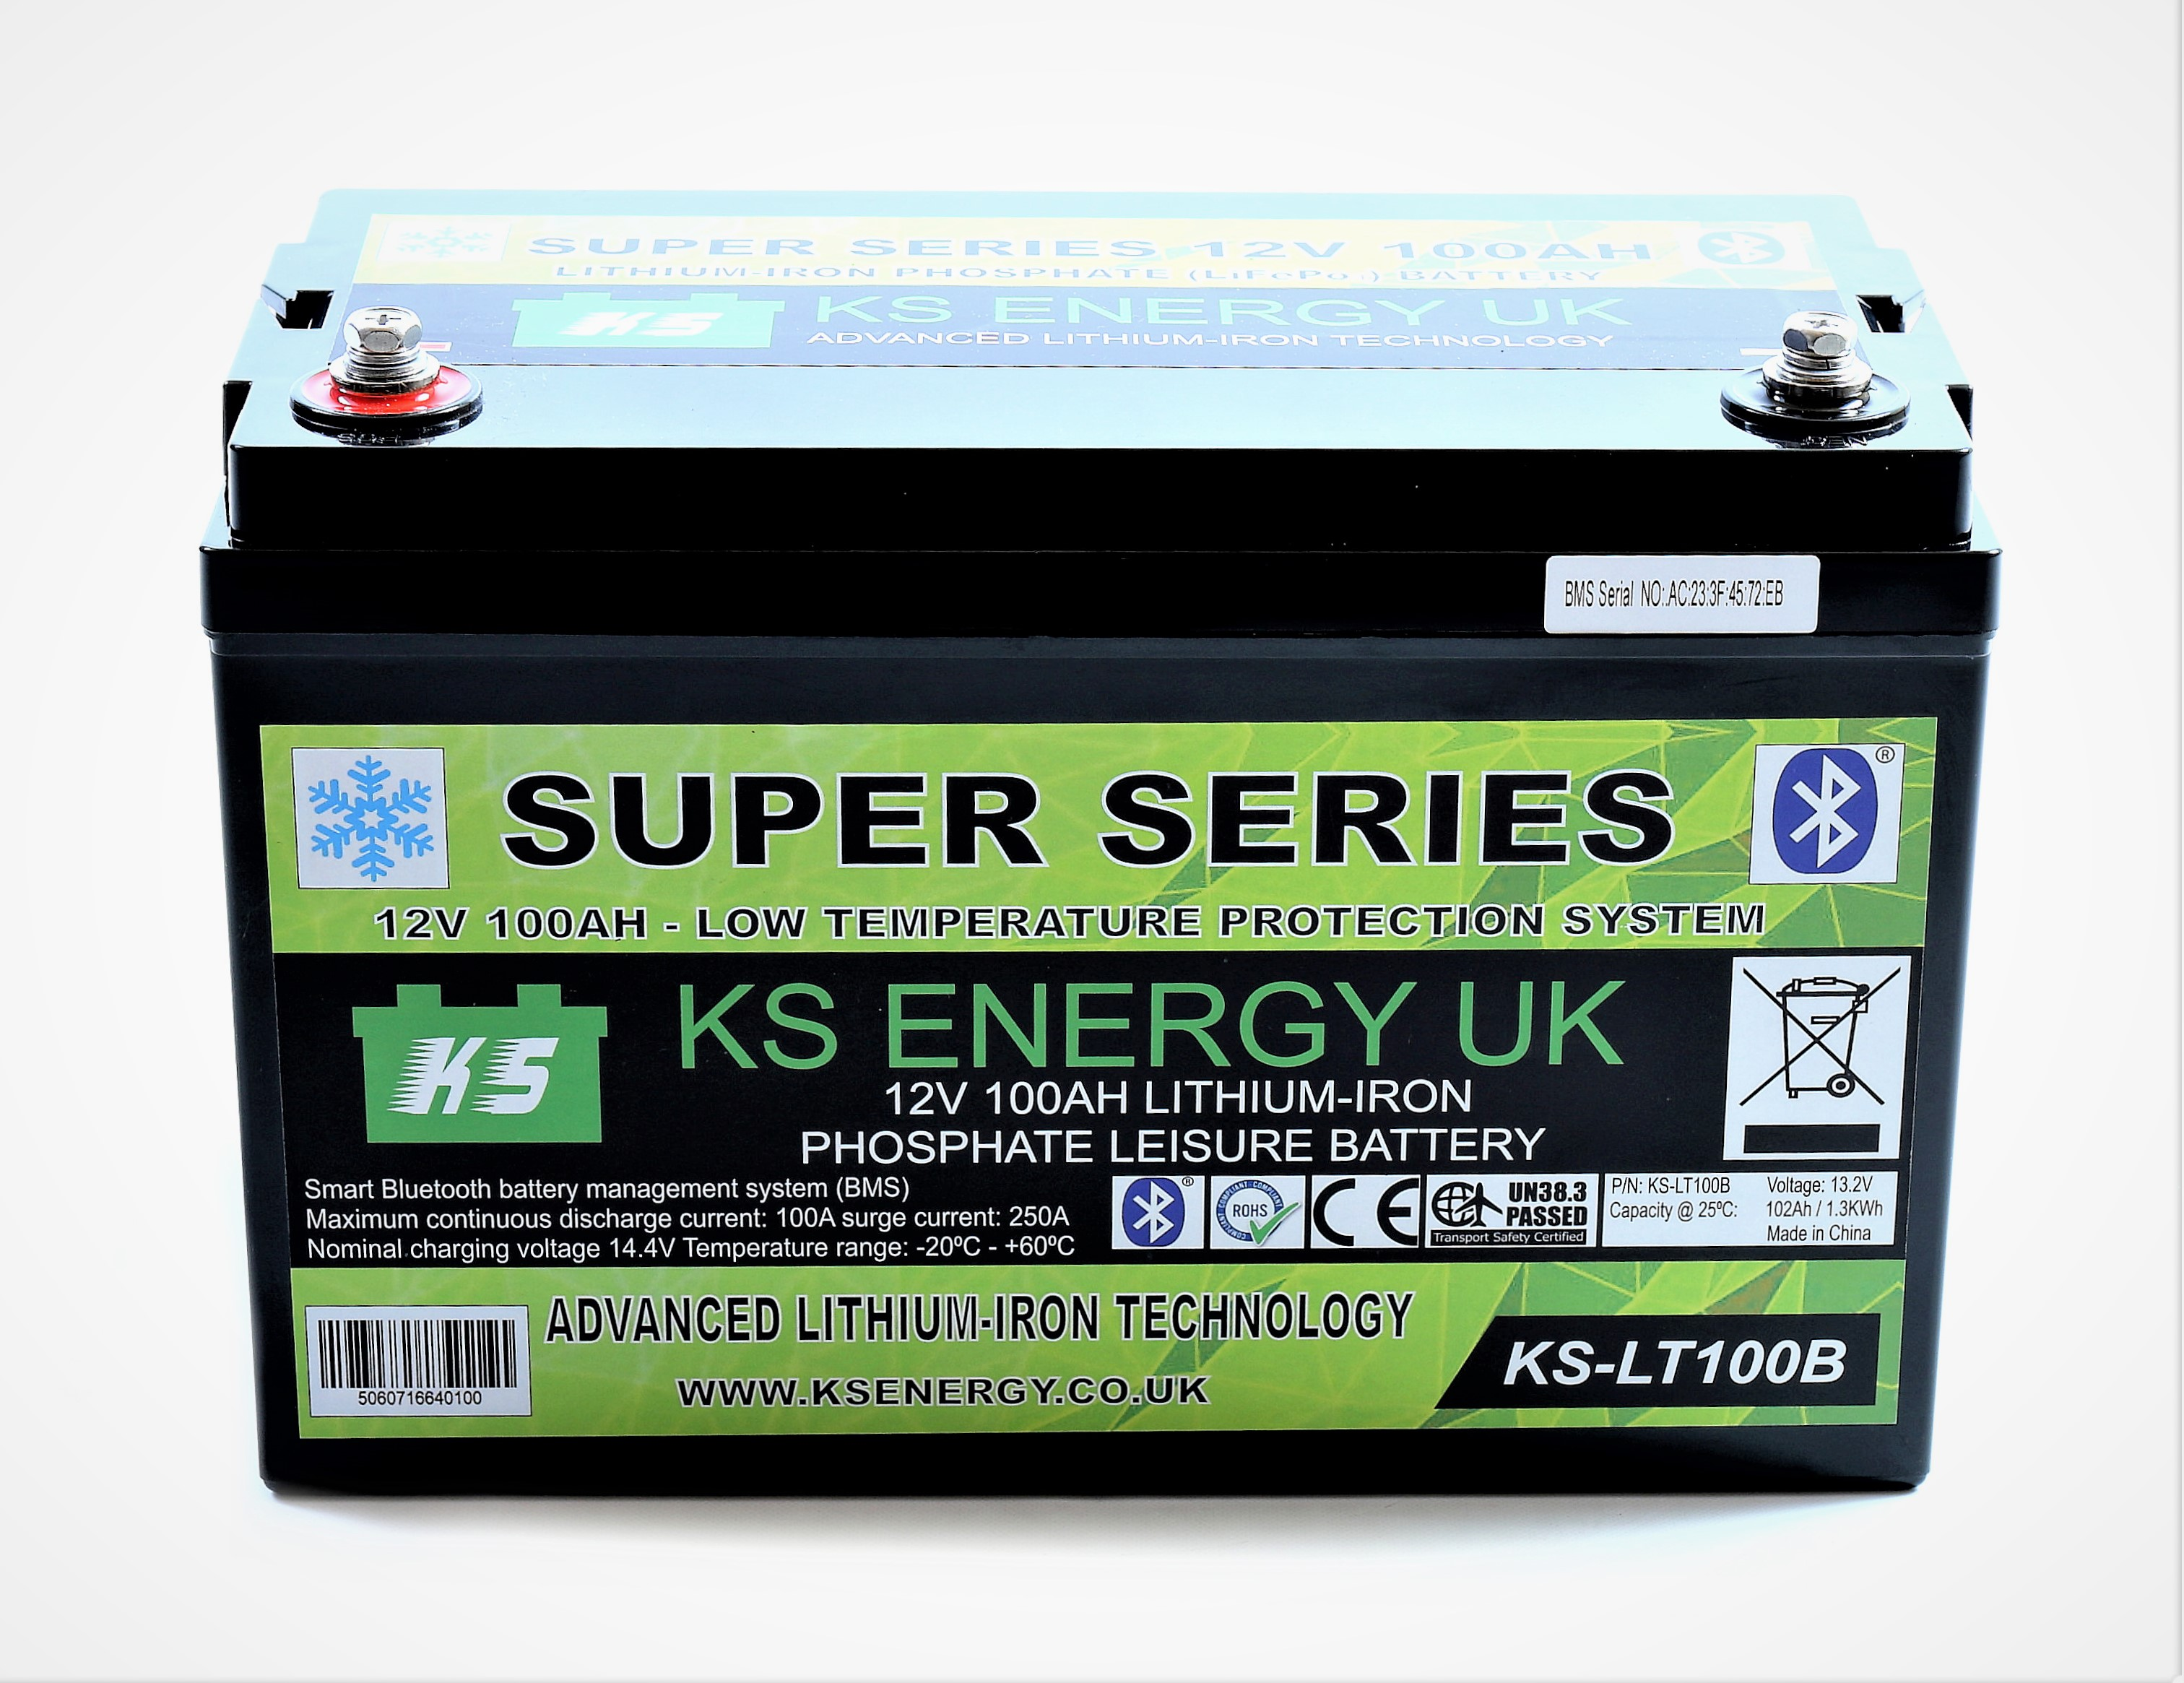 2): KS-LT100B 12v 100AH Bluetooth High Power LiFePo4 lithium leisure battery